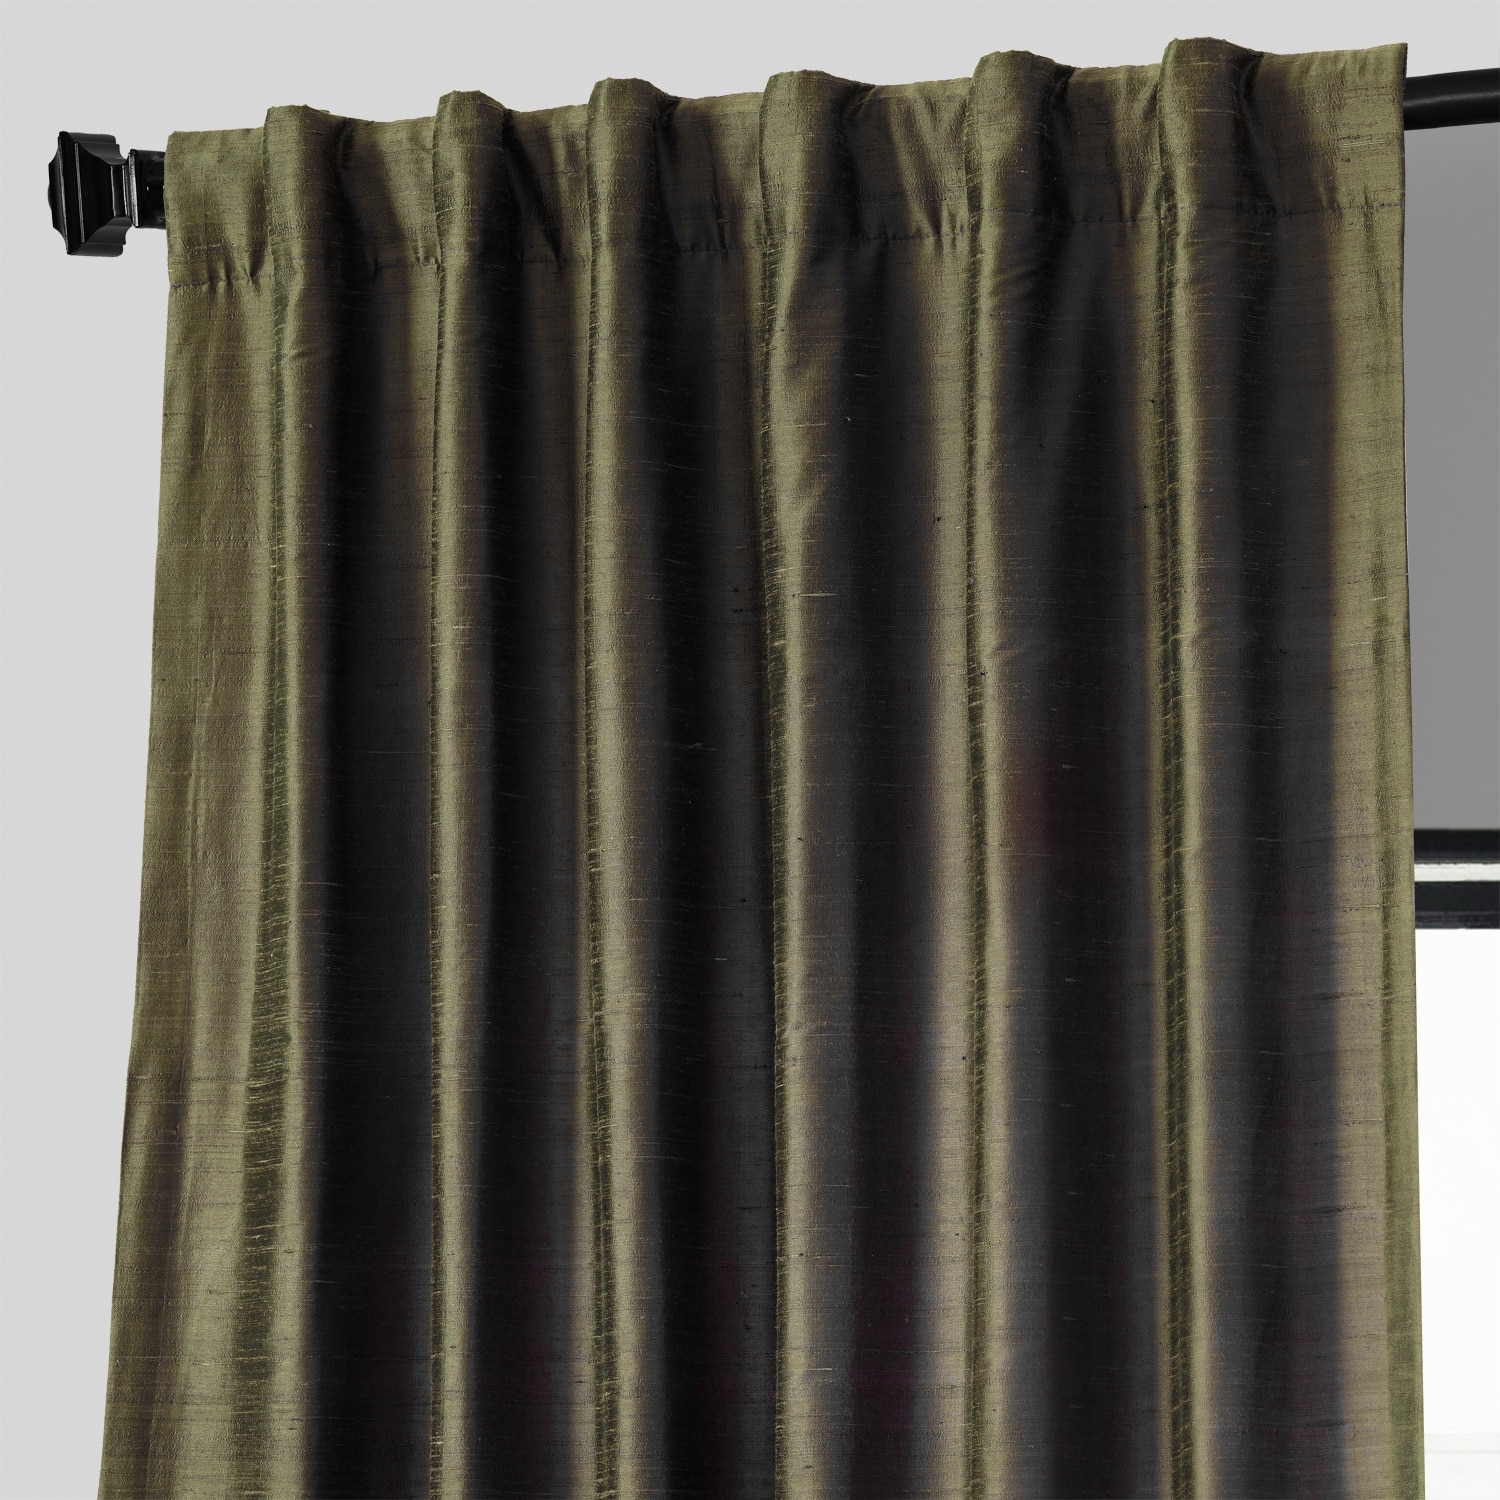 Dark Basil Textured Dupioni Silk Curtain